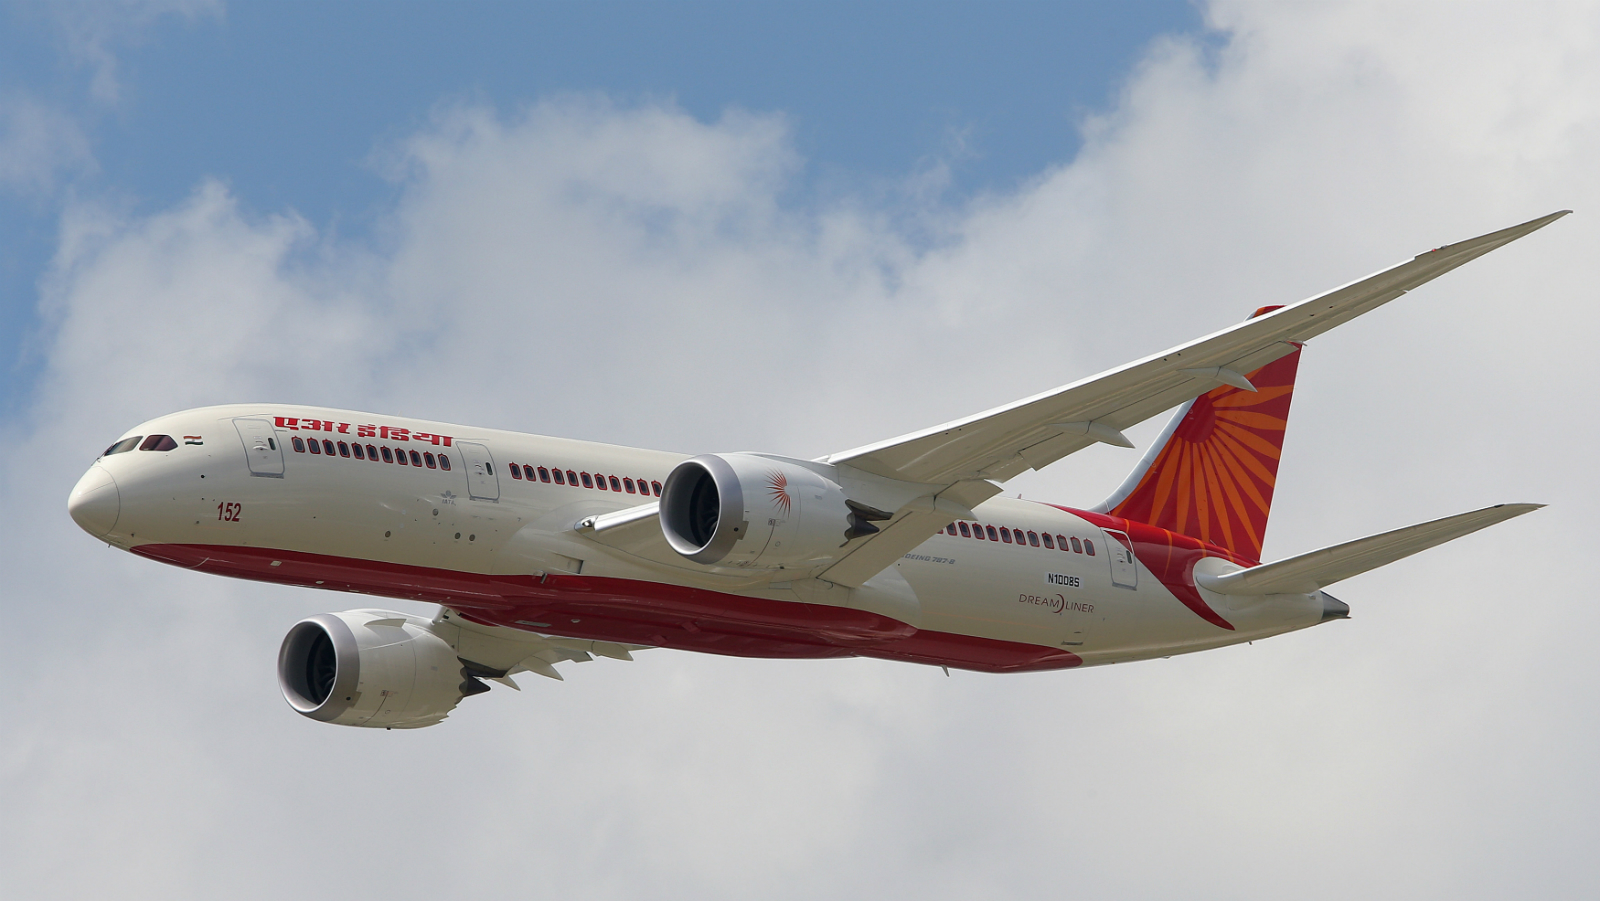 An Air India Airlines Boeing 787 dreamliner takes part in a flying display during the 50th Paris Air Show at the Le Bourget airport near Paris, June 14, 2013. The Paris Air Show runs from June 17 to 23.